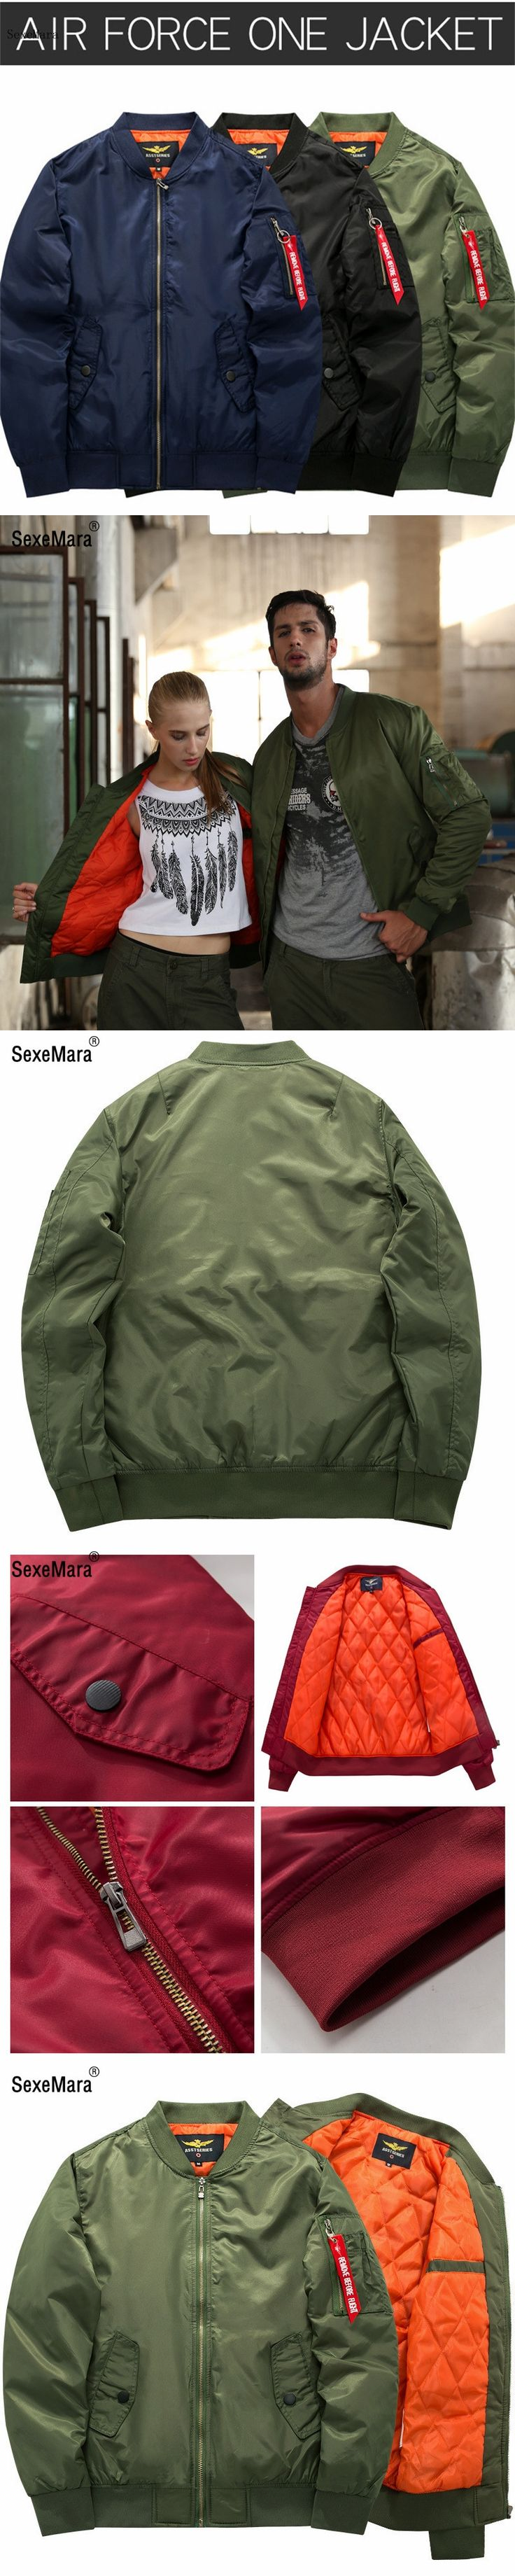 Army Tactical Baseball Thick Jacket Bomber Jackets And Coats For Men Military Jacket 8808  Winter Coat For Men